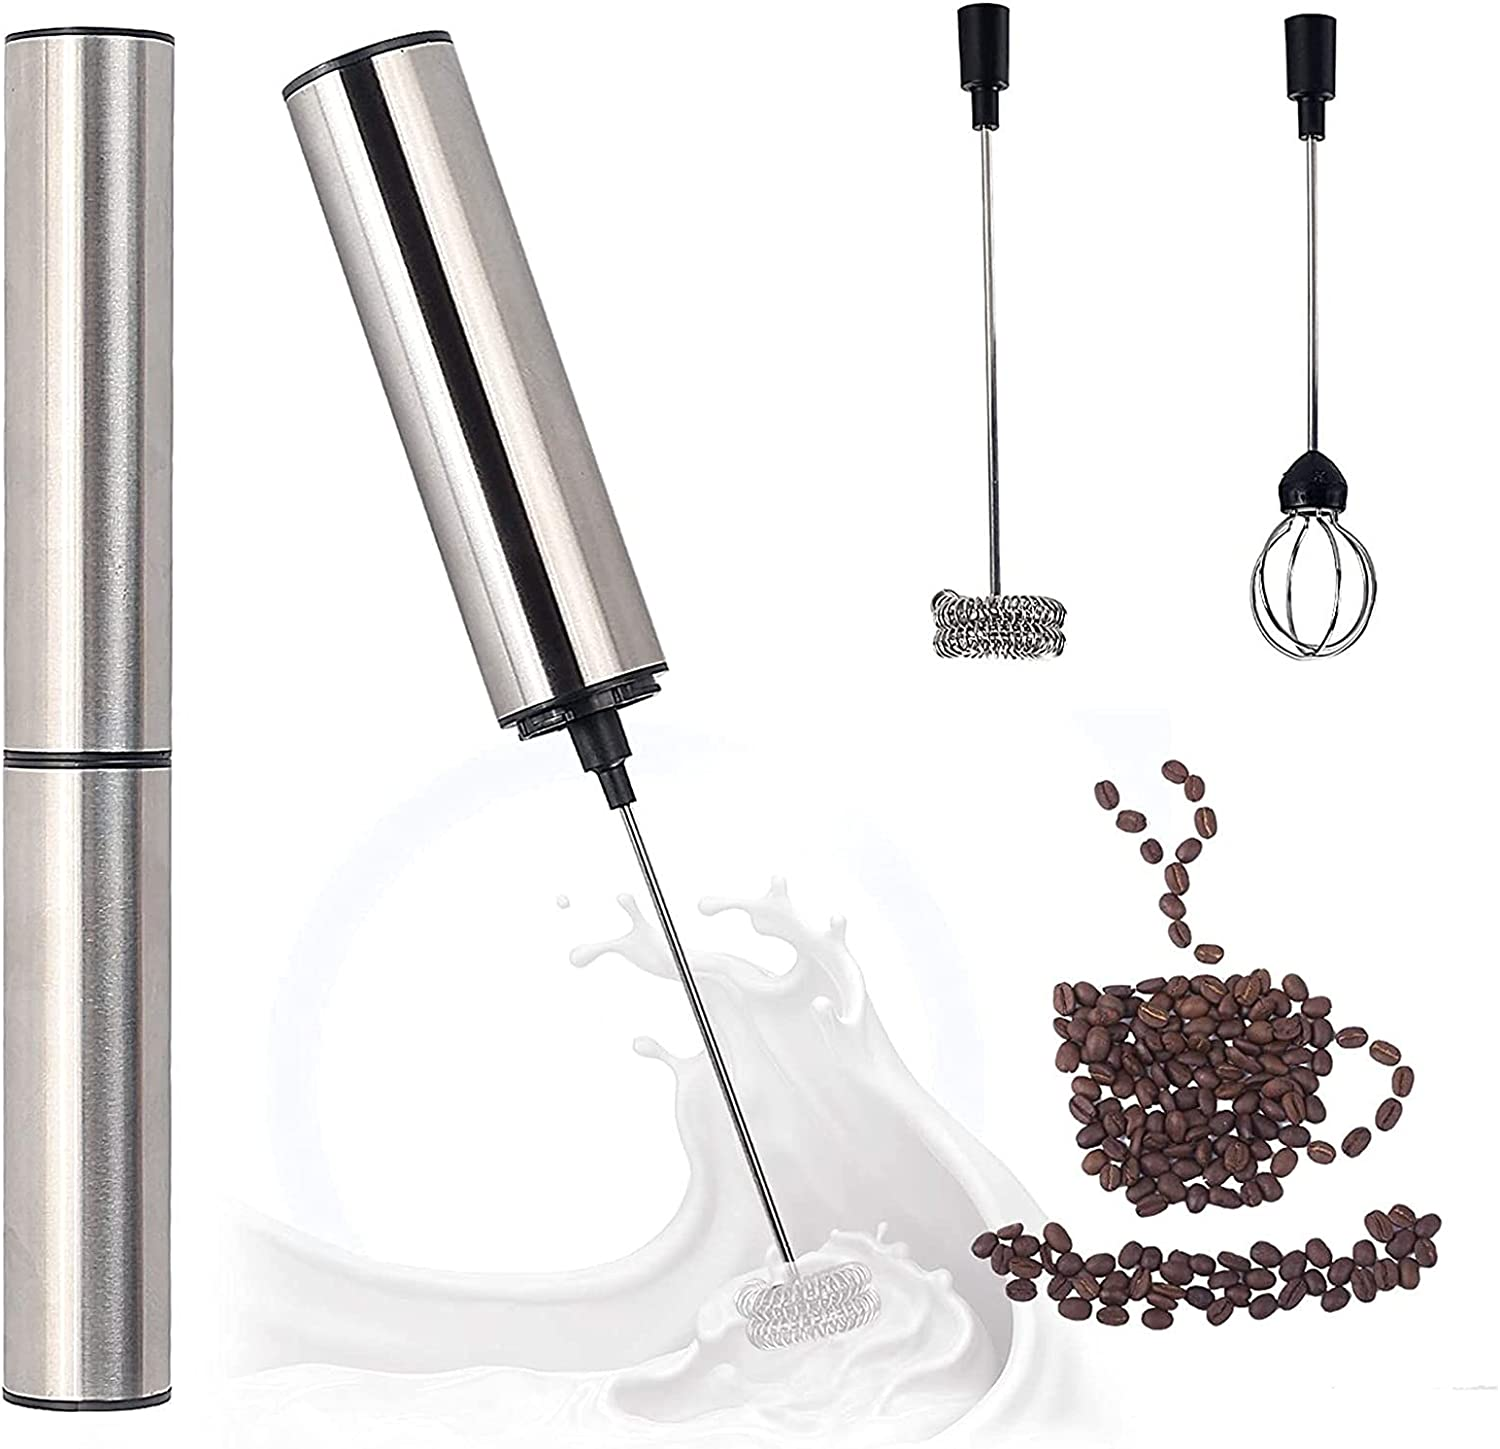 artizan USB Rechargeable Stainless Steel Coffee Frother Foam Mak Columbus Outlet sale feature Mall